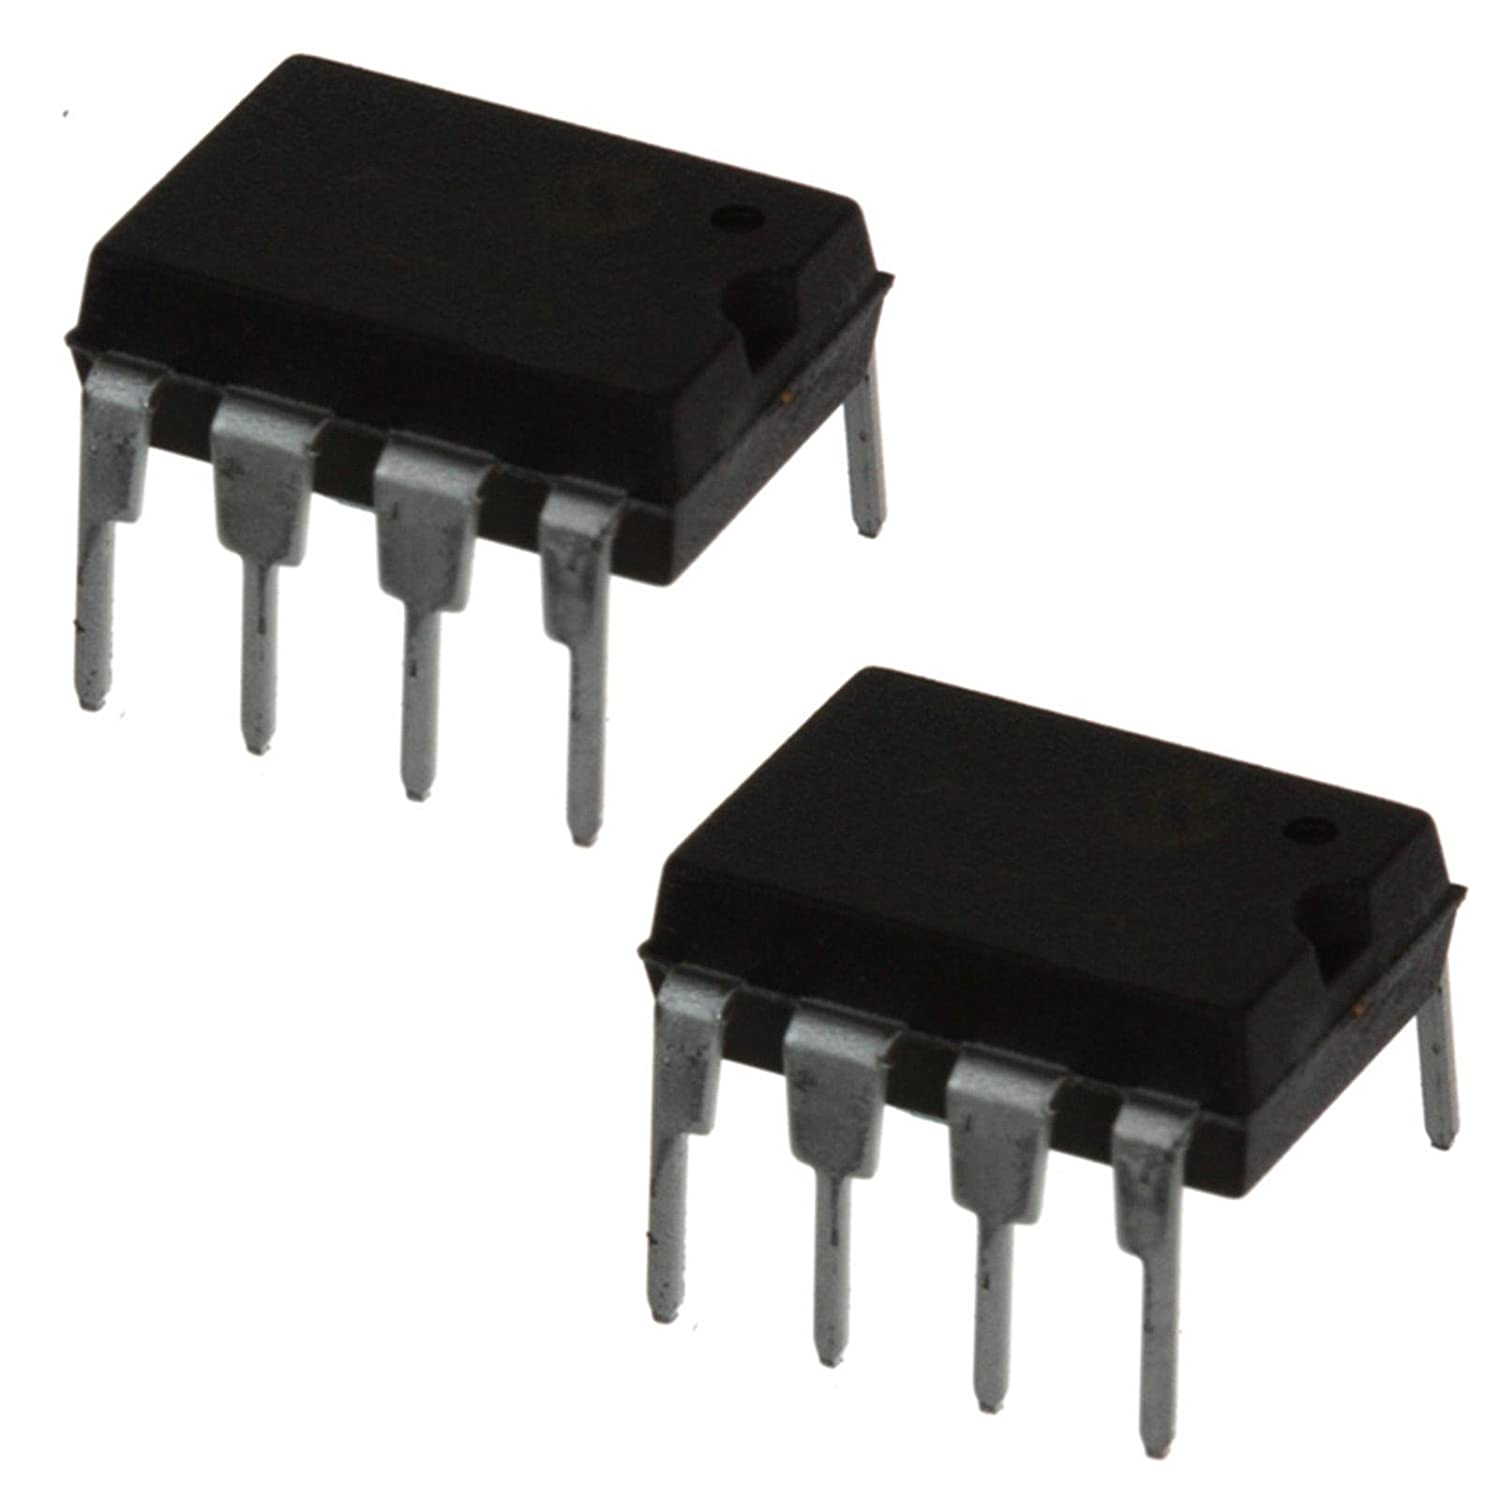 2x NE5532P Dual Low Noise Operational Op Amp/Amplifiers NE5532 DIP IC Texas Instruments